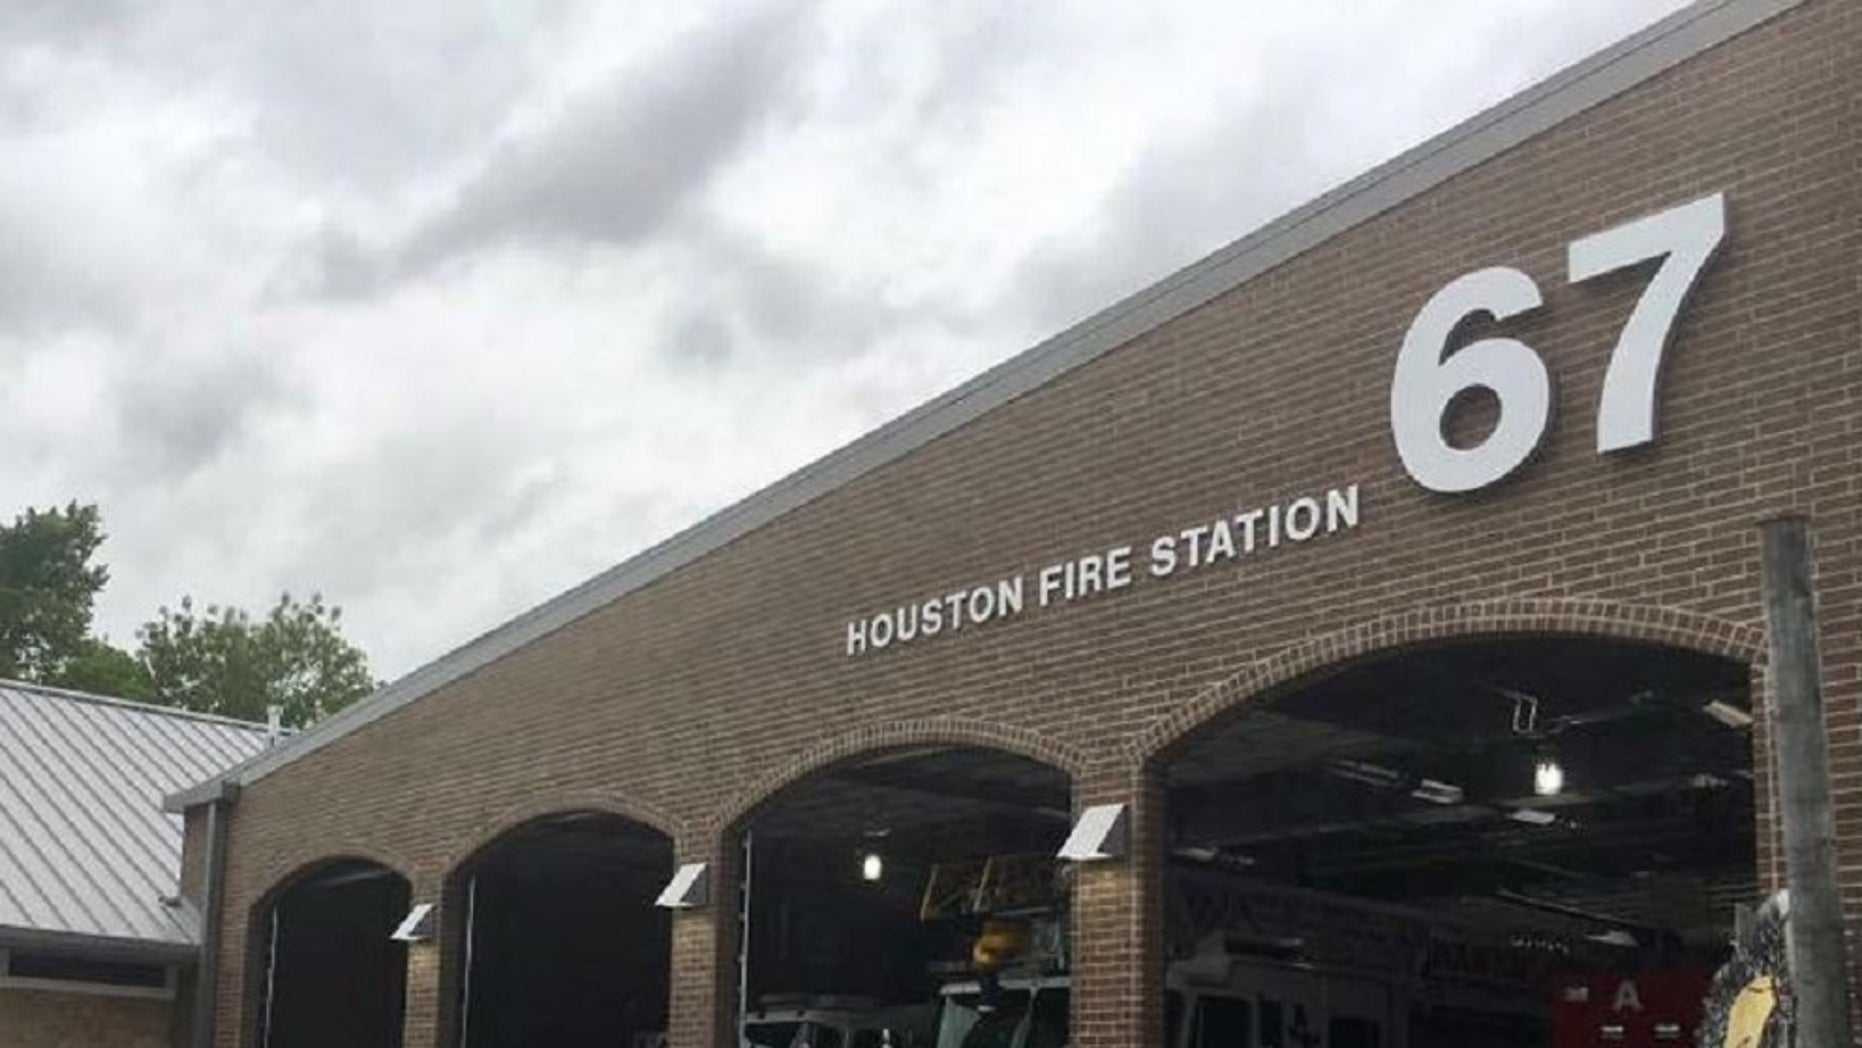 Houston sent layoff notices to 68 fire department cadets in its effort to fund a voter-approved measure to hike the pay for firefighters.